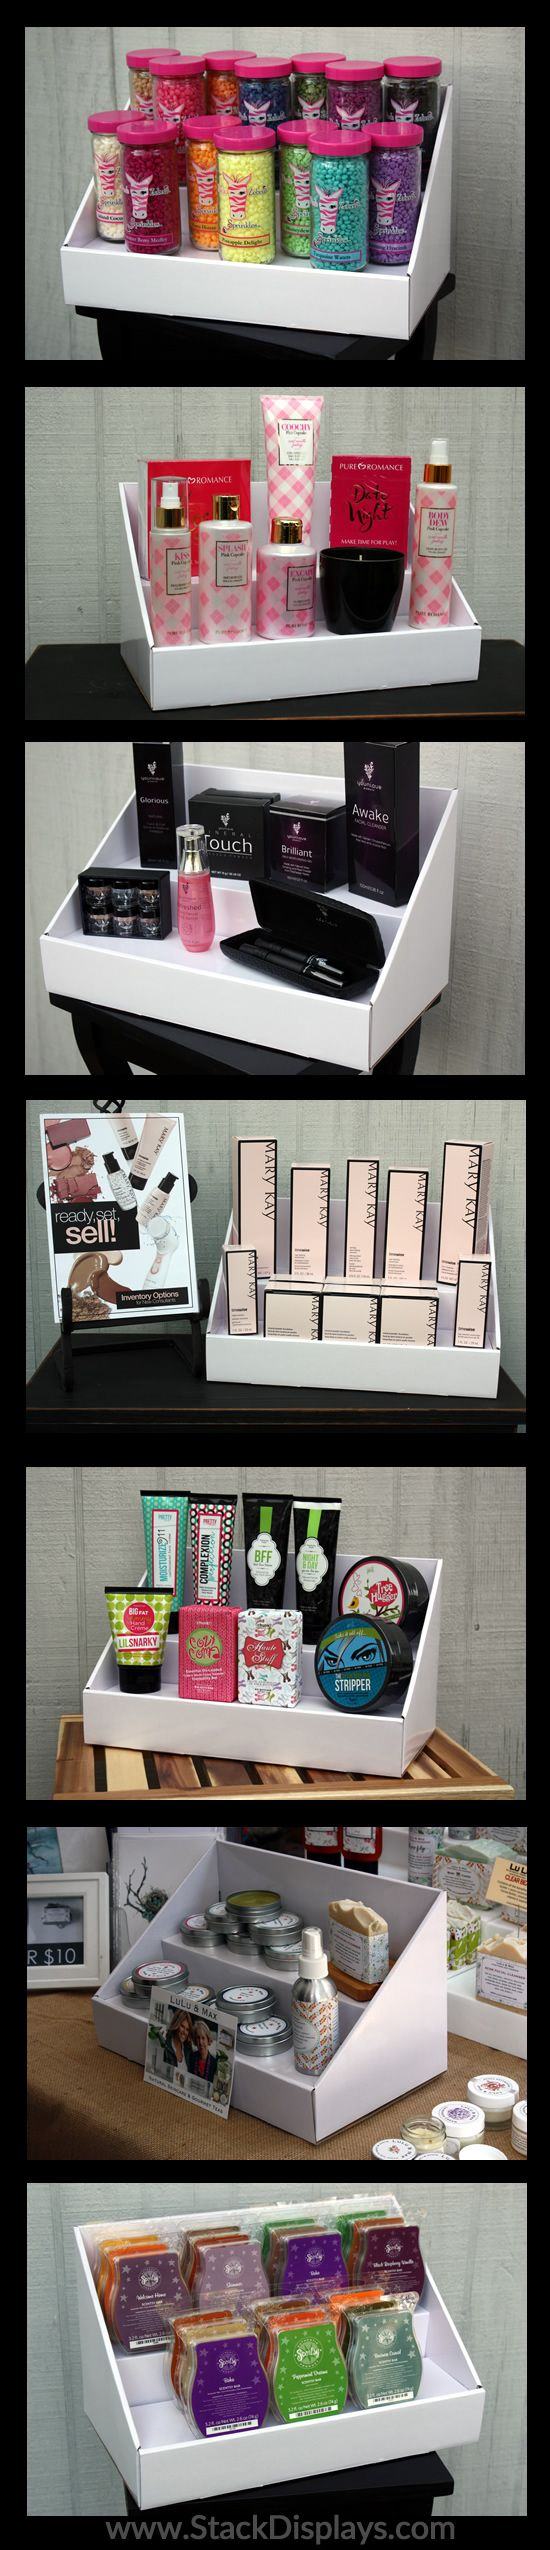 Direct Sales products on white Stack Displays! Pink Zebra, Pure Romance, Mary Kay, Younique, Perfectly Posh, Scentsy, Arbonne, Limelight by Alcone.